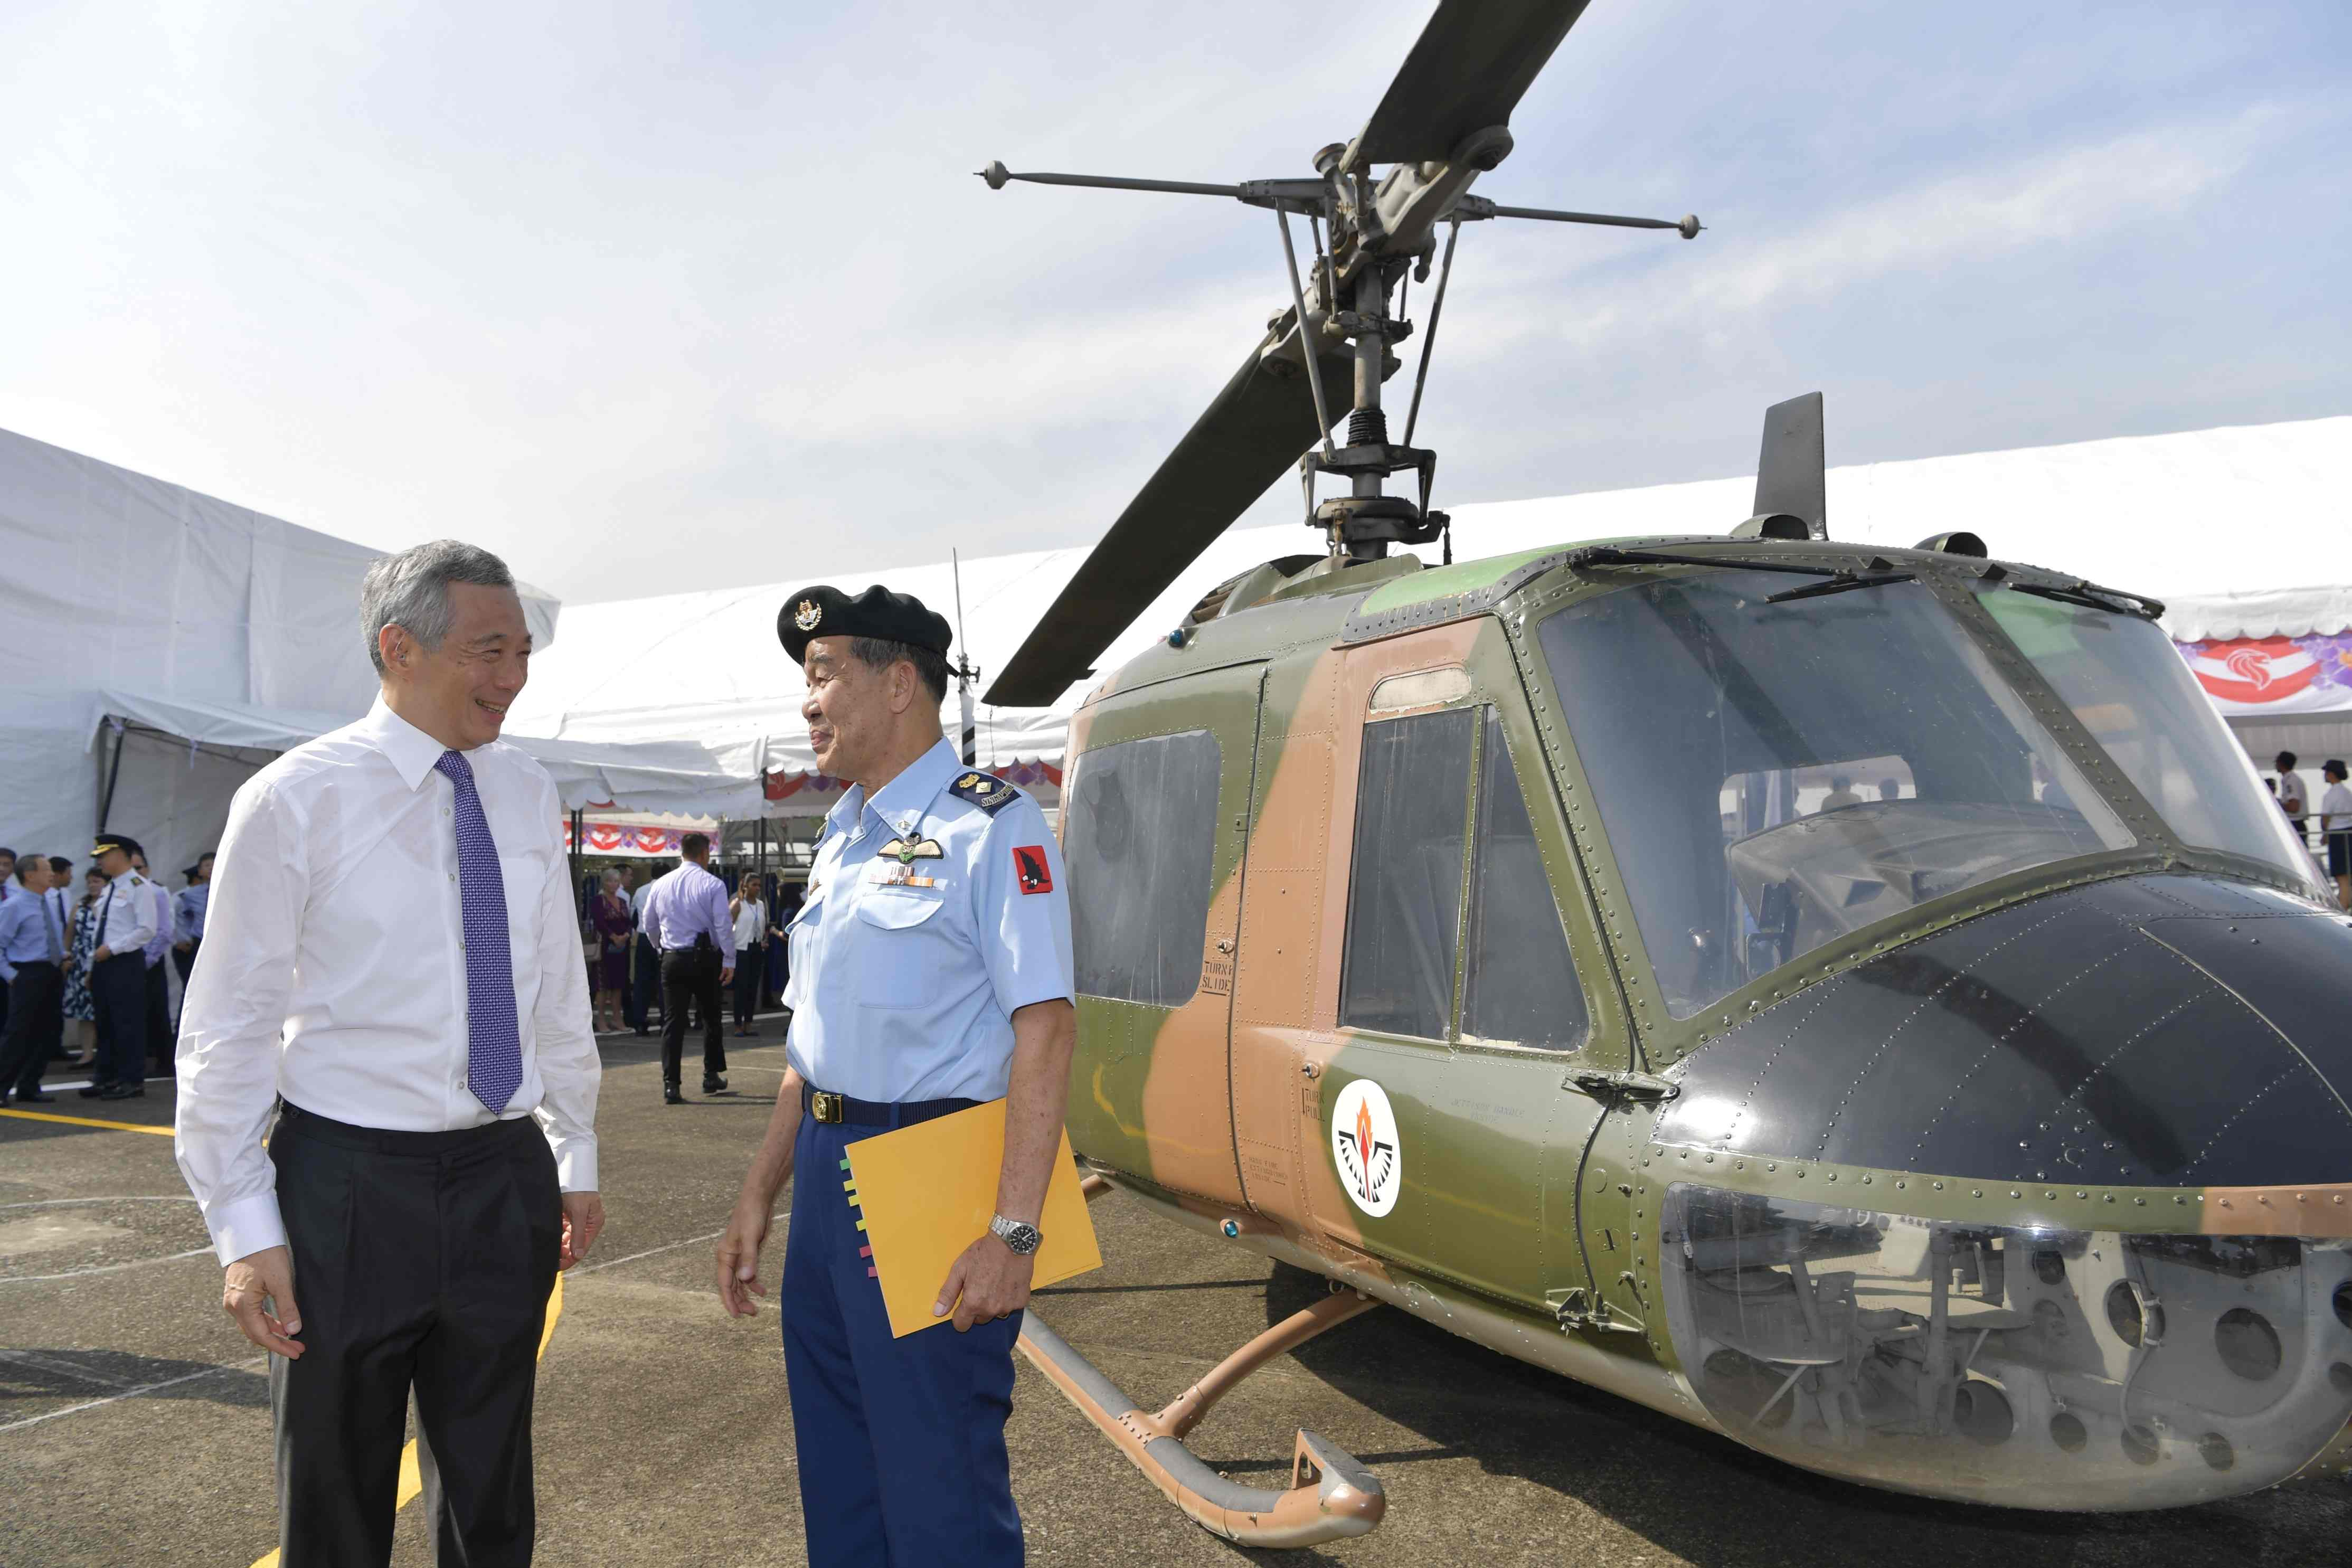 PM Lee interacting with RSAF Pioneer, LTC(Ret) Leo Tin Boon, in front of the UH-1H helicopter.